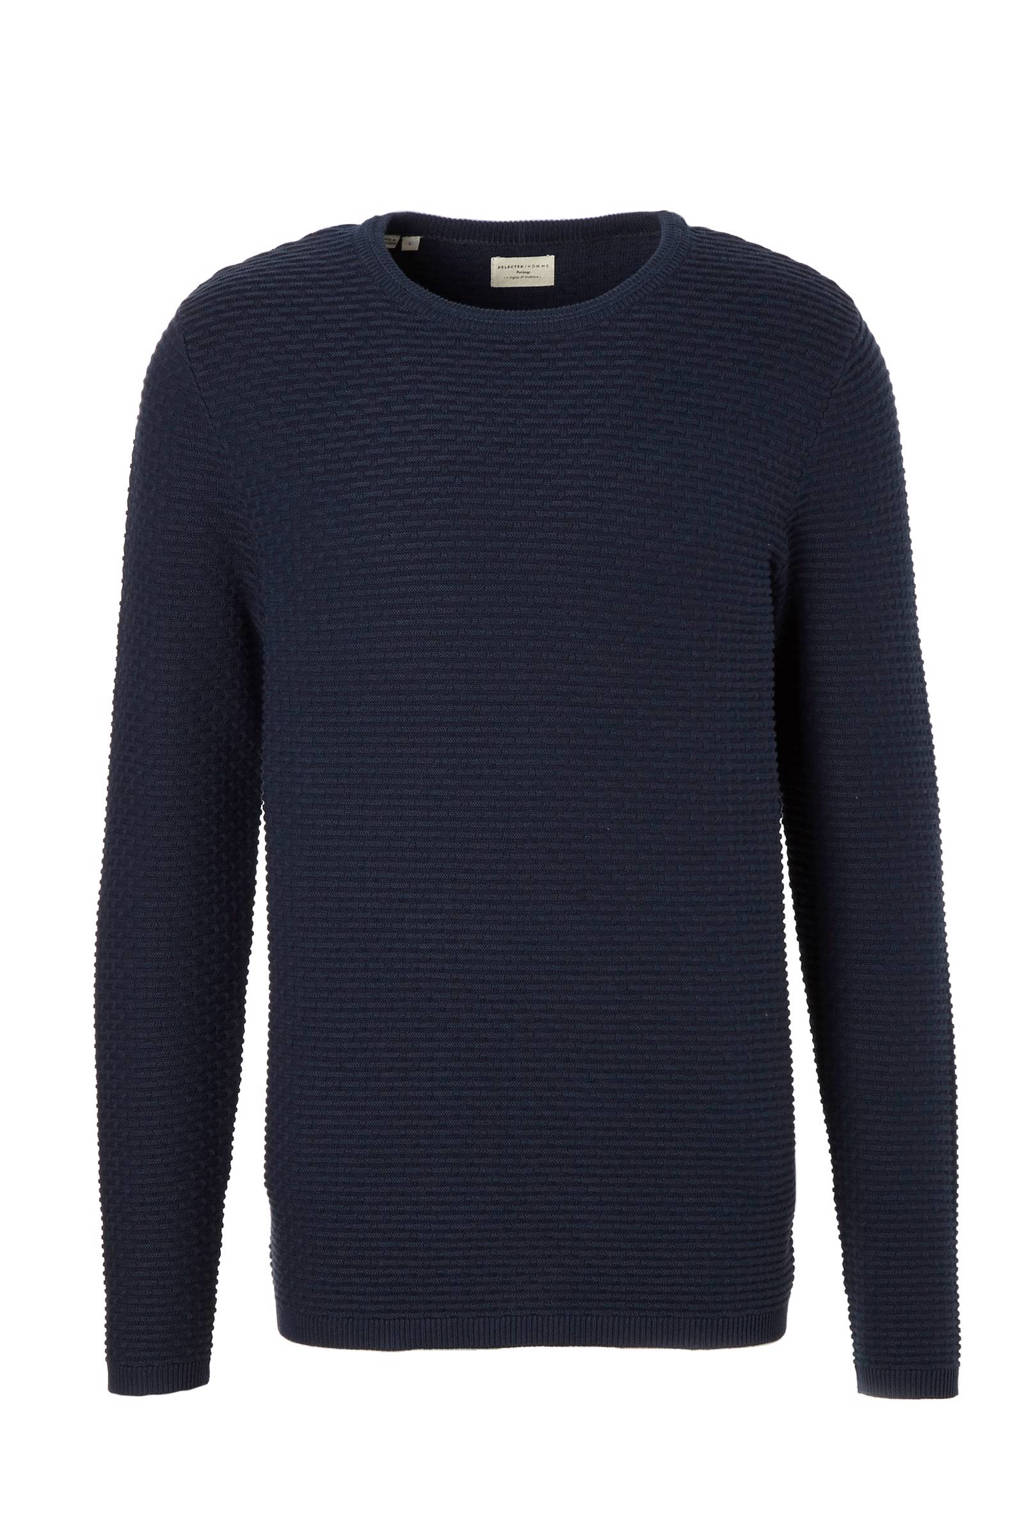 SELECTED HOMME Newdean trui, Donkerblauw